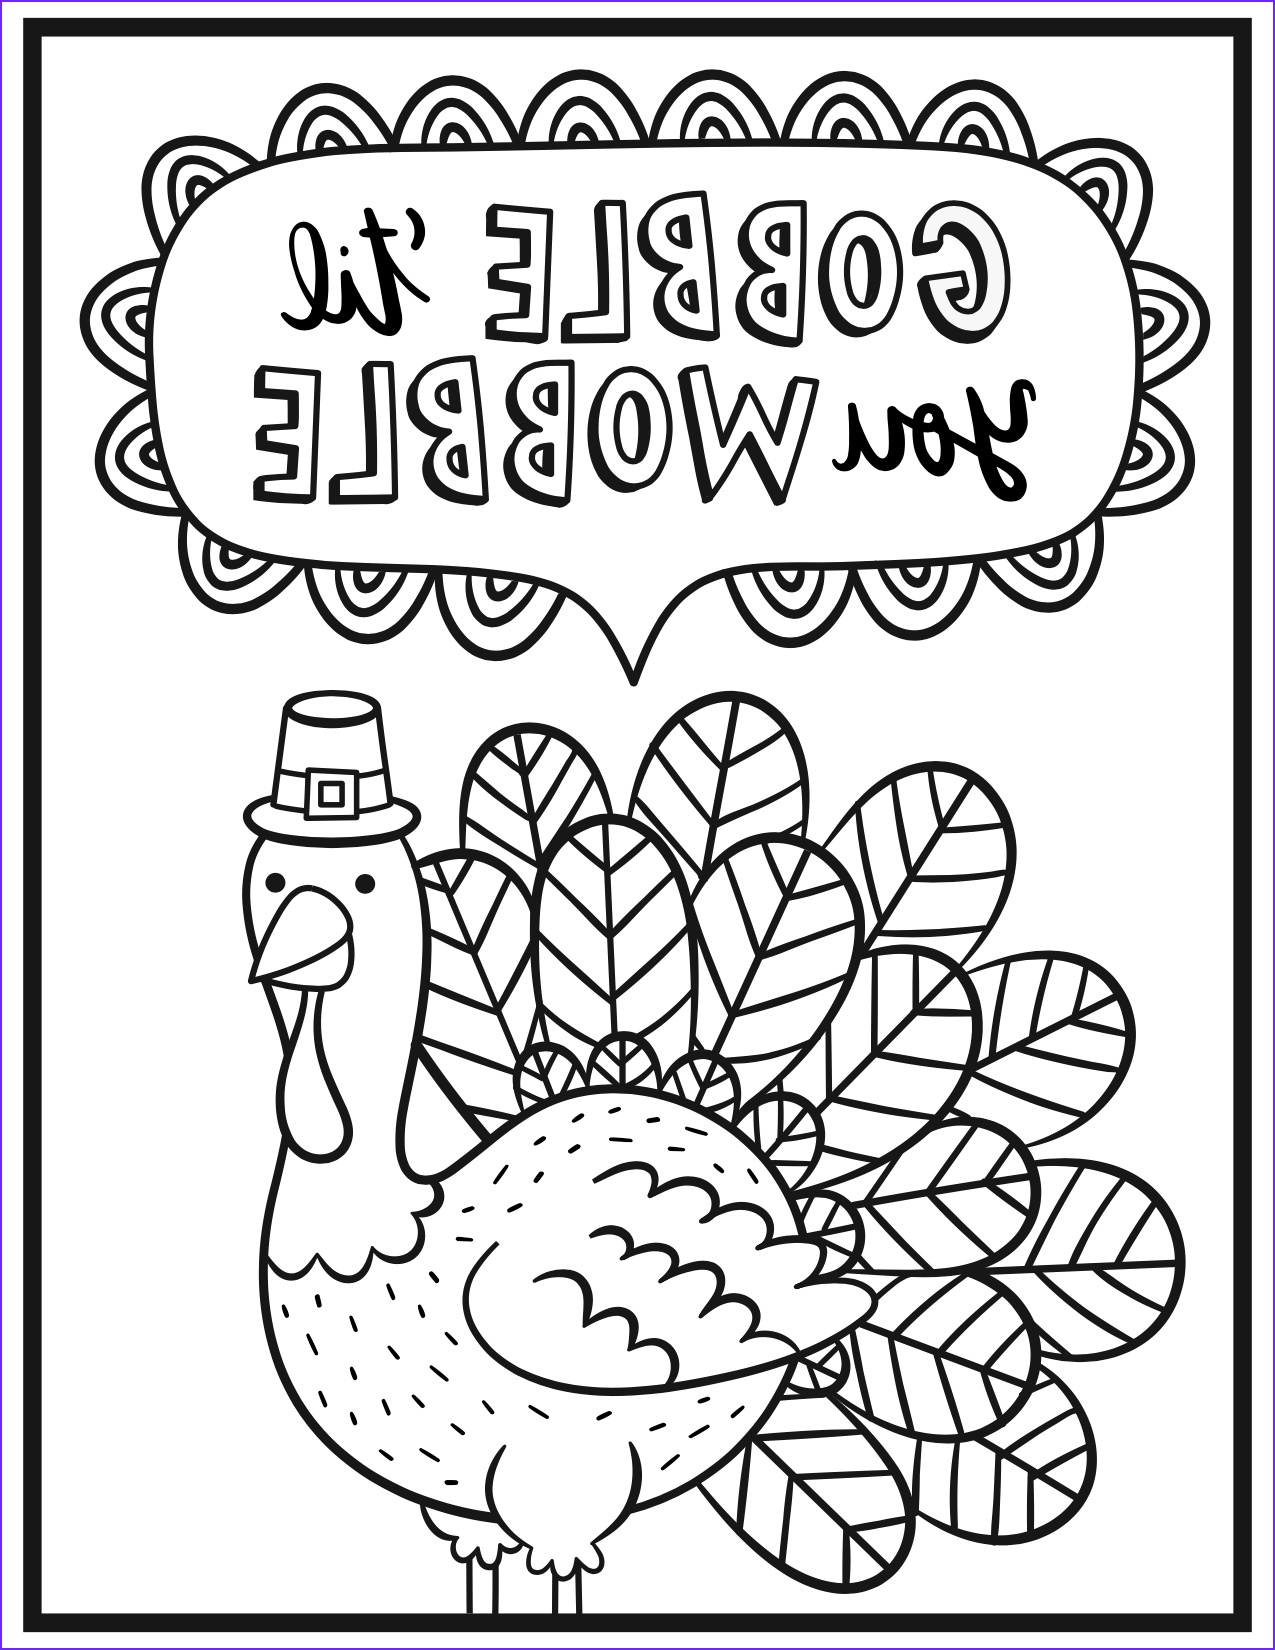 Thanksgiving Coloring Picture Free Printables Cool Gallery An Adult Coloring Page For Thanksgiving